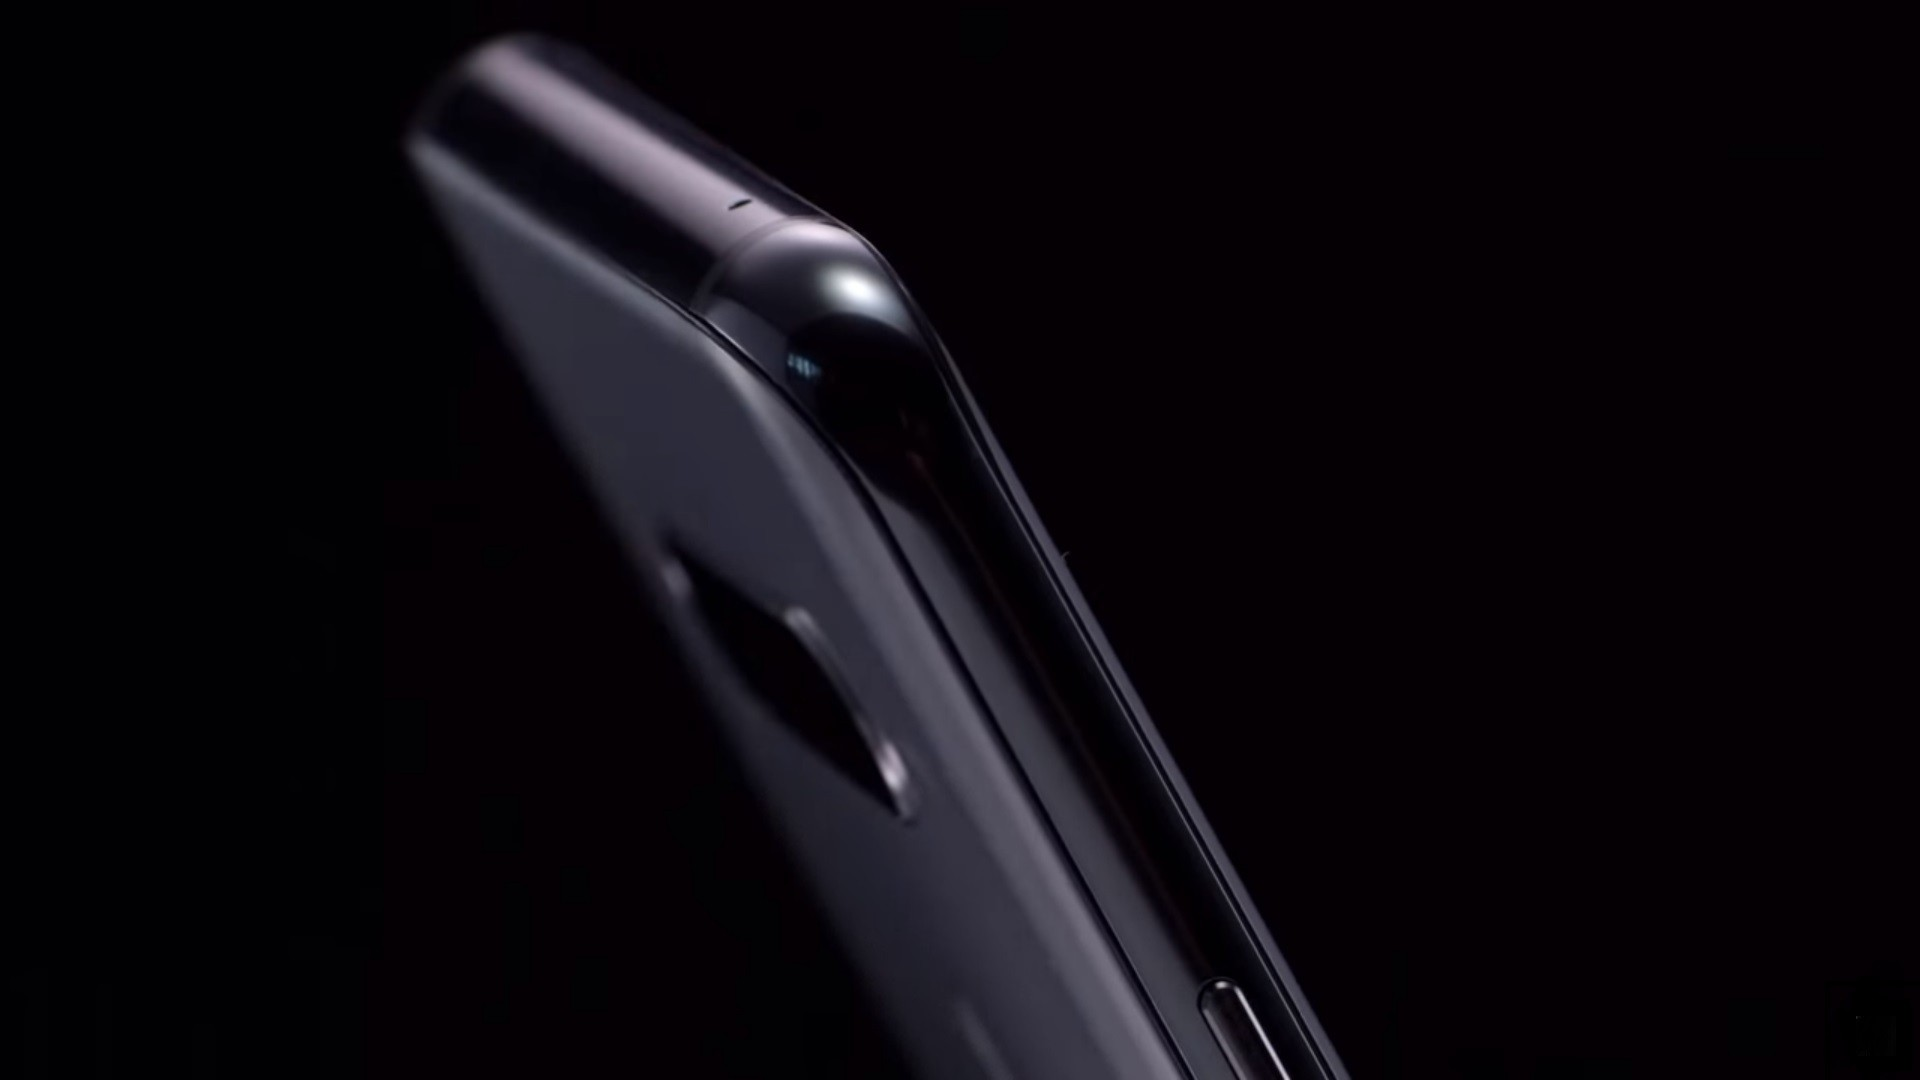 The top, side view of the LG V40 ThinQ in New Aurora Black